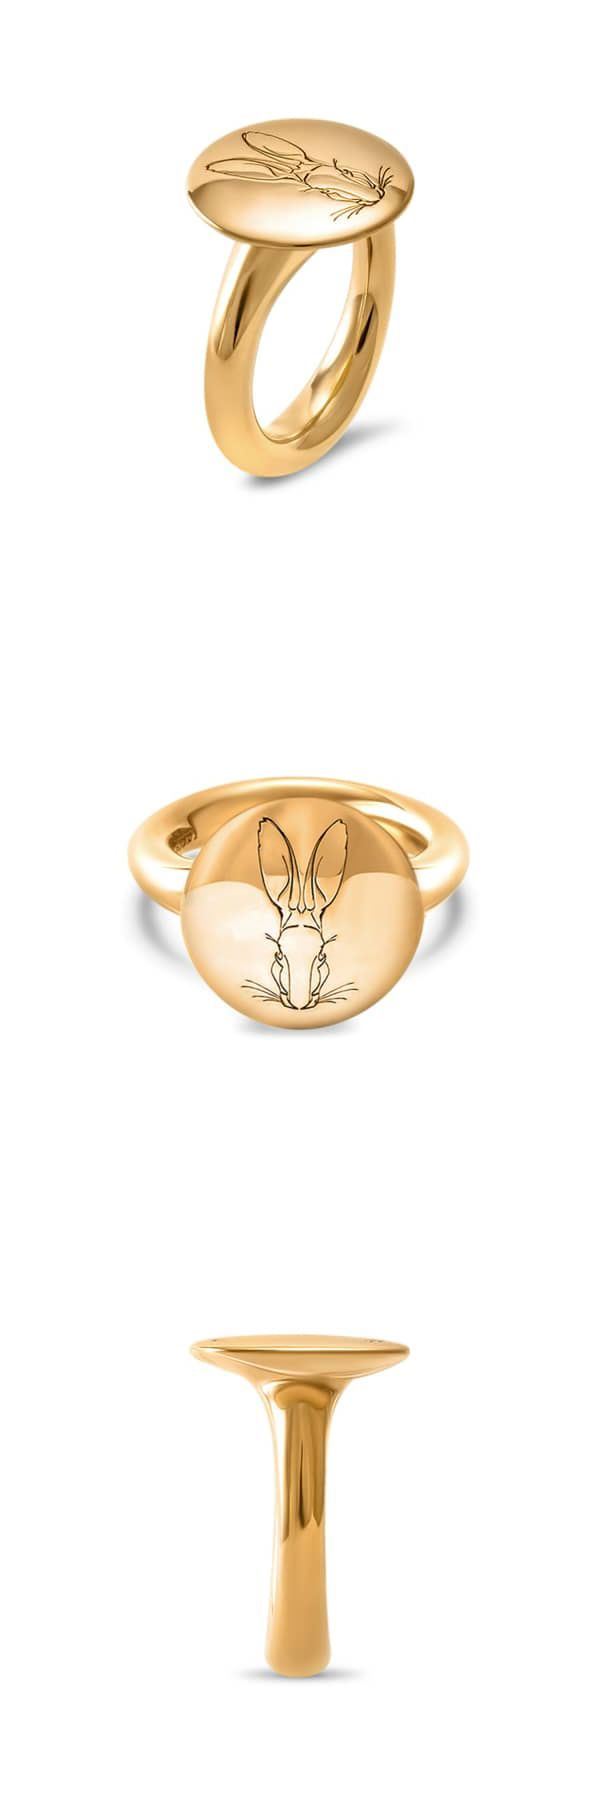 Bracteate Gold Signet Ring  | Hargreaves Stockholm | Wolf & Badger / Women / Jewellery / Rings